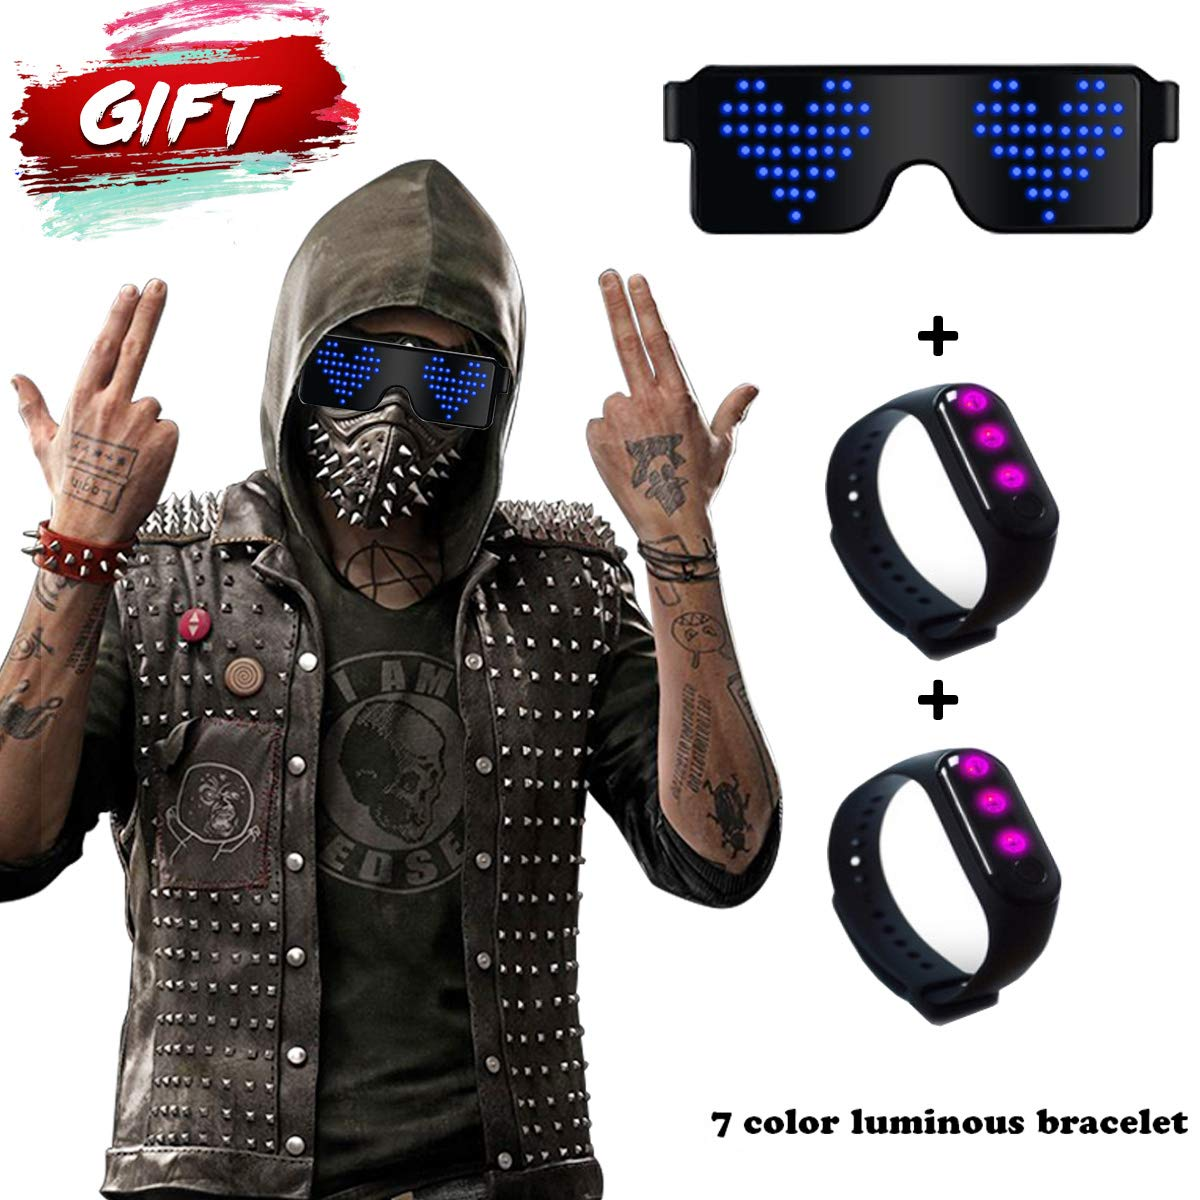 New Years party Supplies Birthday Parties Blue Halloween DJ RICISUNG Trustworthy 2019 LED Sunglass,Flashing Cool Party Light up Glasses can work in 8 Animation Modes for 10 Hours,For Nightclubs